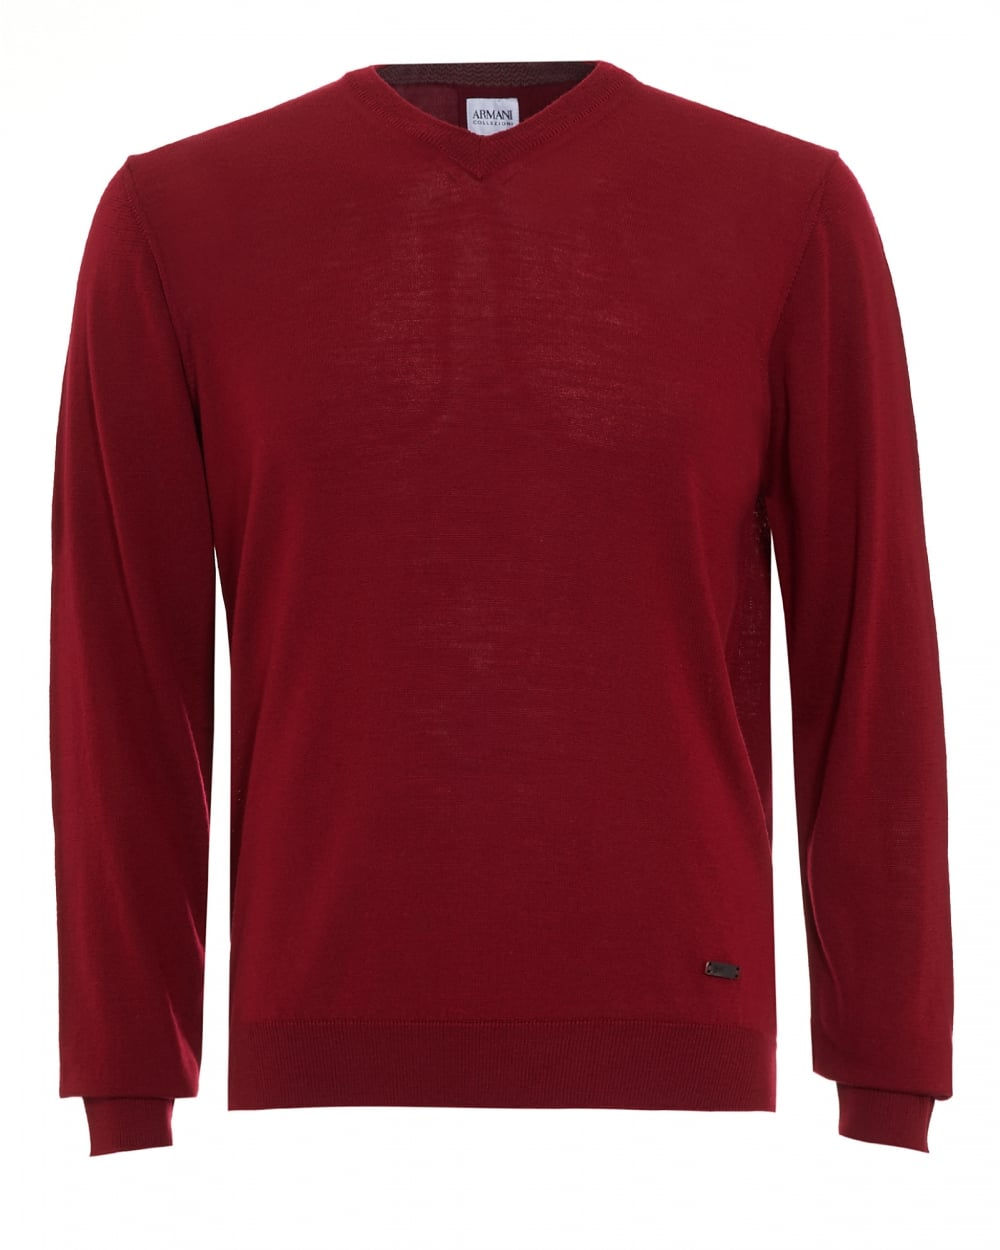 Our latest collection of men's knitwear includes everything from Natural lambs wool blend v-neck jumper Save. Was £ Now £ Raging Bull Petrol V-neck cotton cashmere sweater Wine red crew neck jumper Save. £ Burton Black v-neck jumper Save. Was £